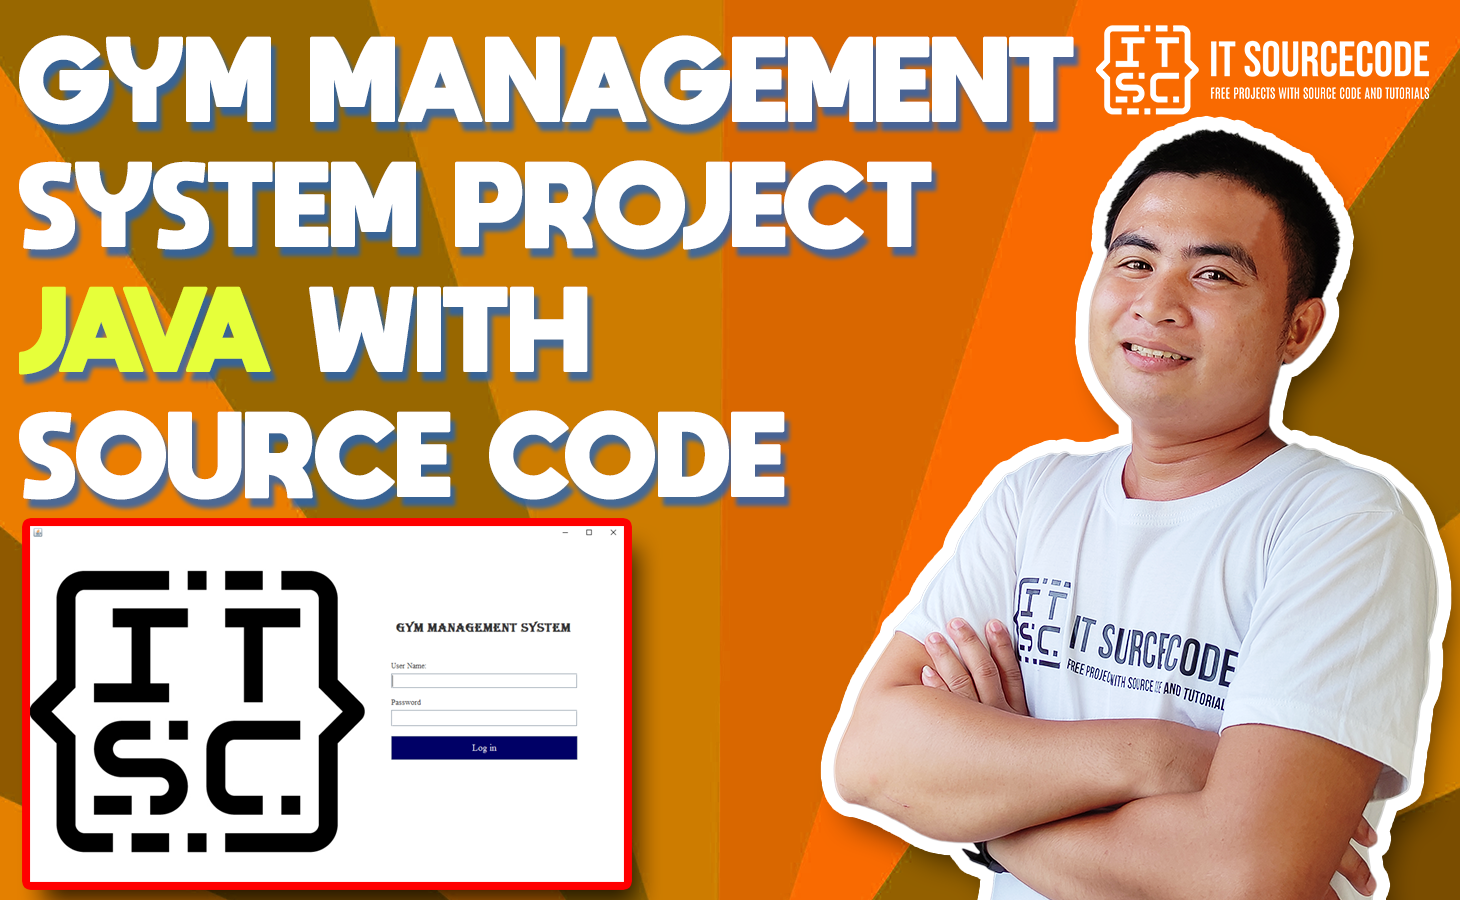 Gym Management System Project In Java With Source Code